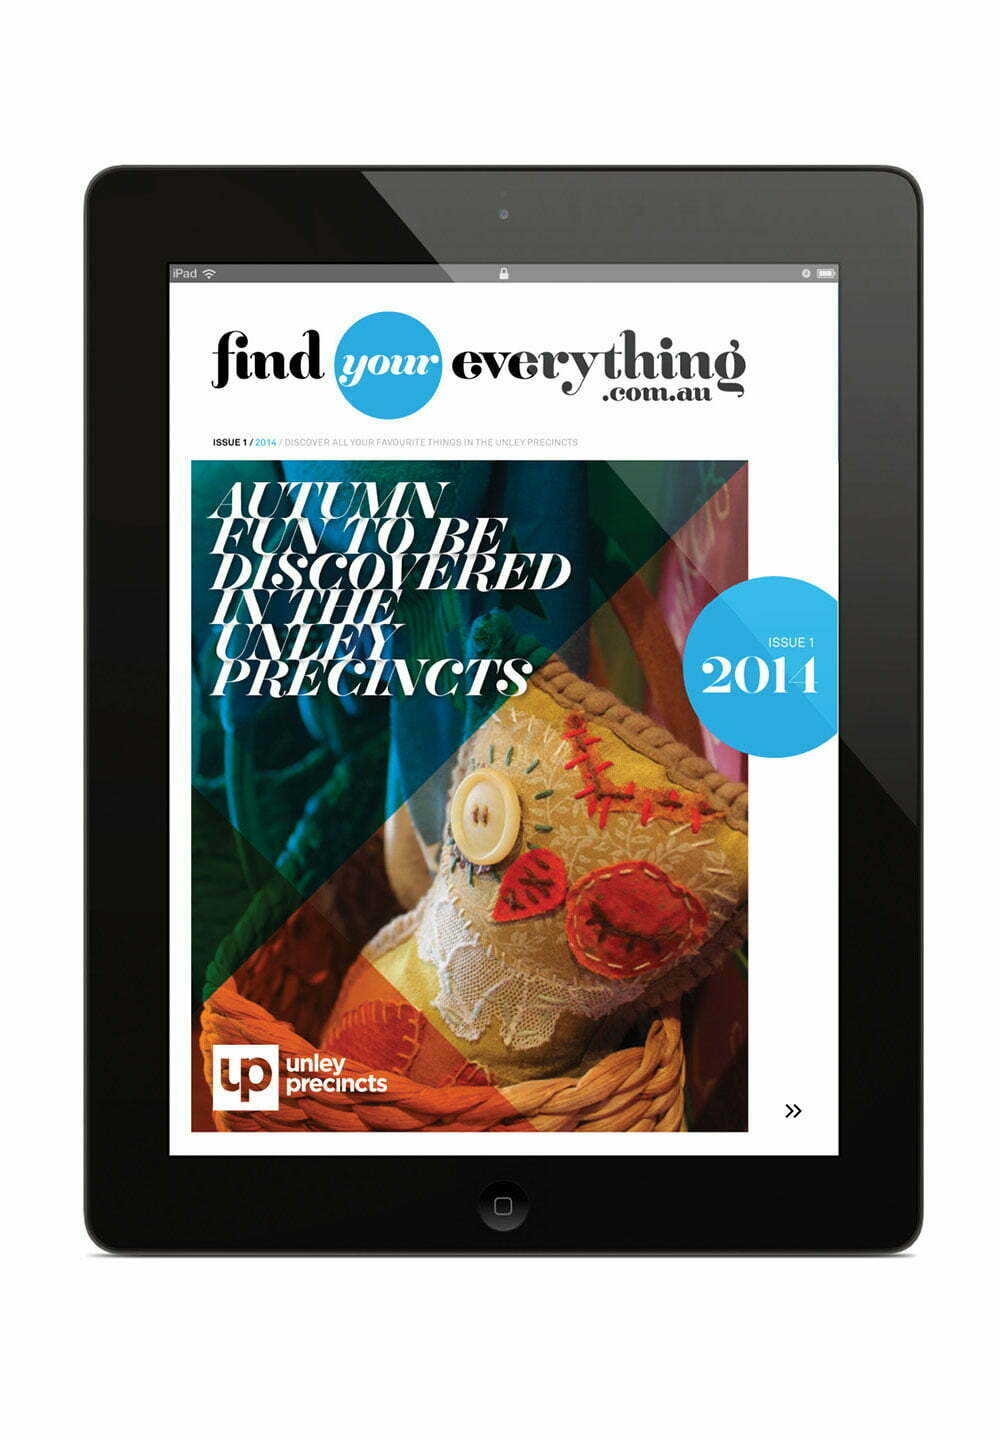 Find Your Everything - Digital Publication